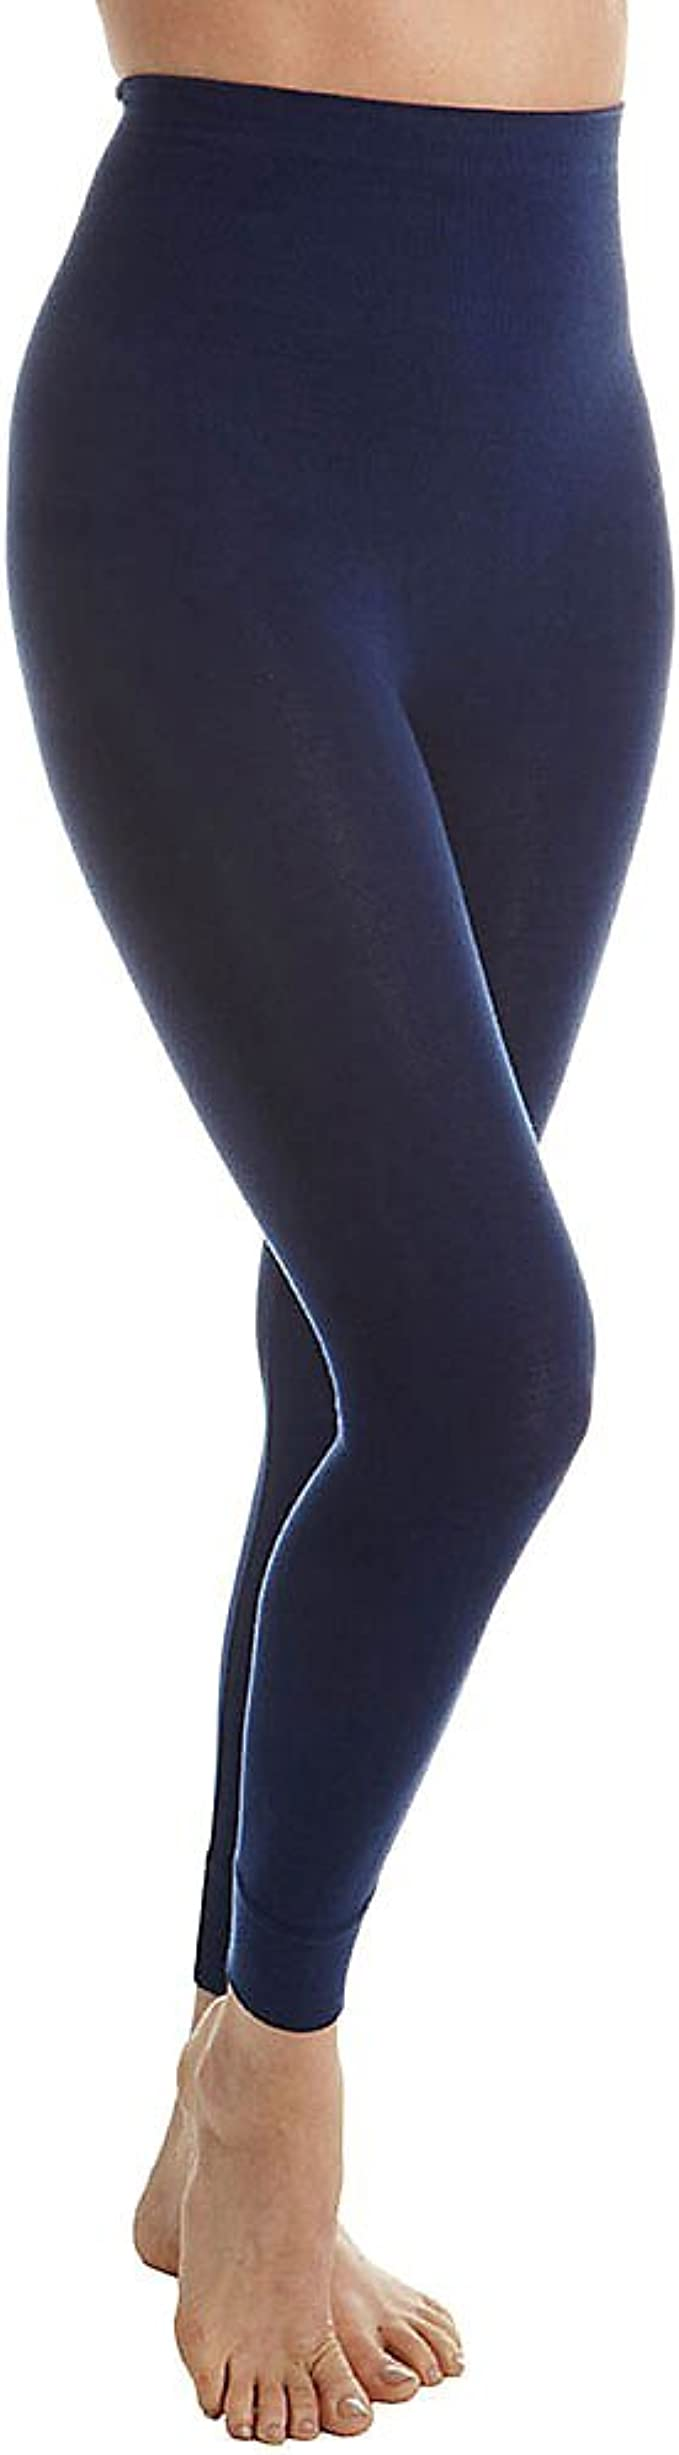 RHONDA SHEAR Size 3X High-Waist Cotton-Blend Shaping Leggings BLACK